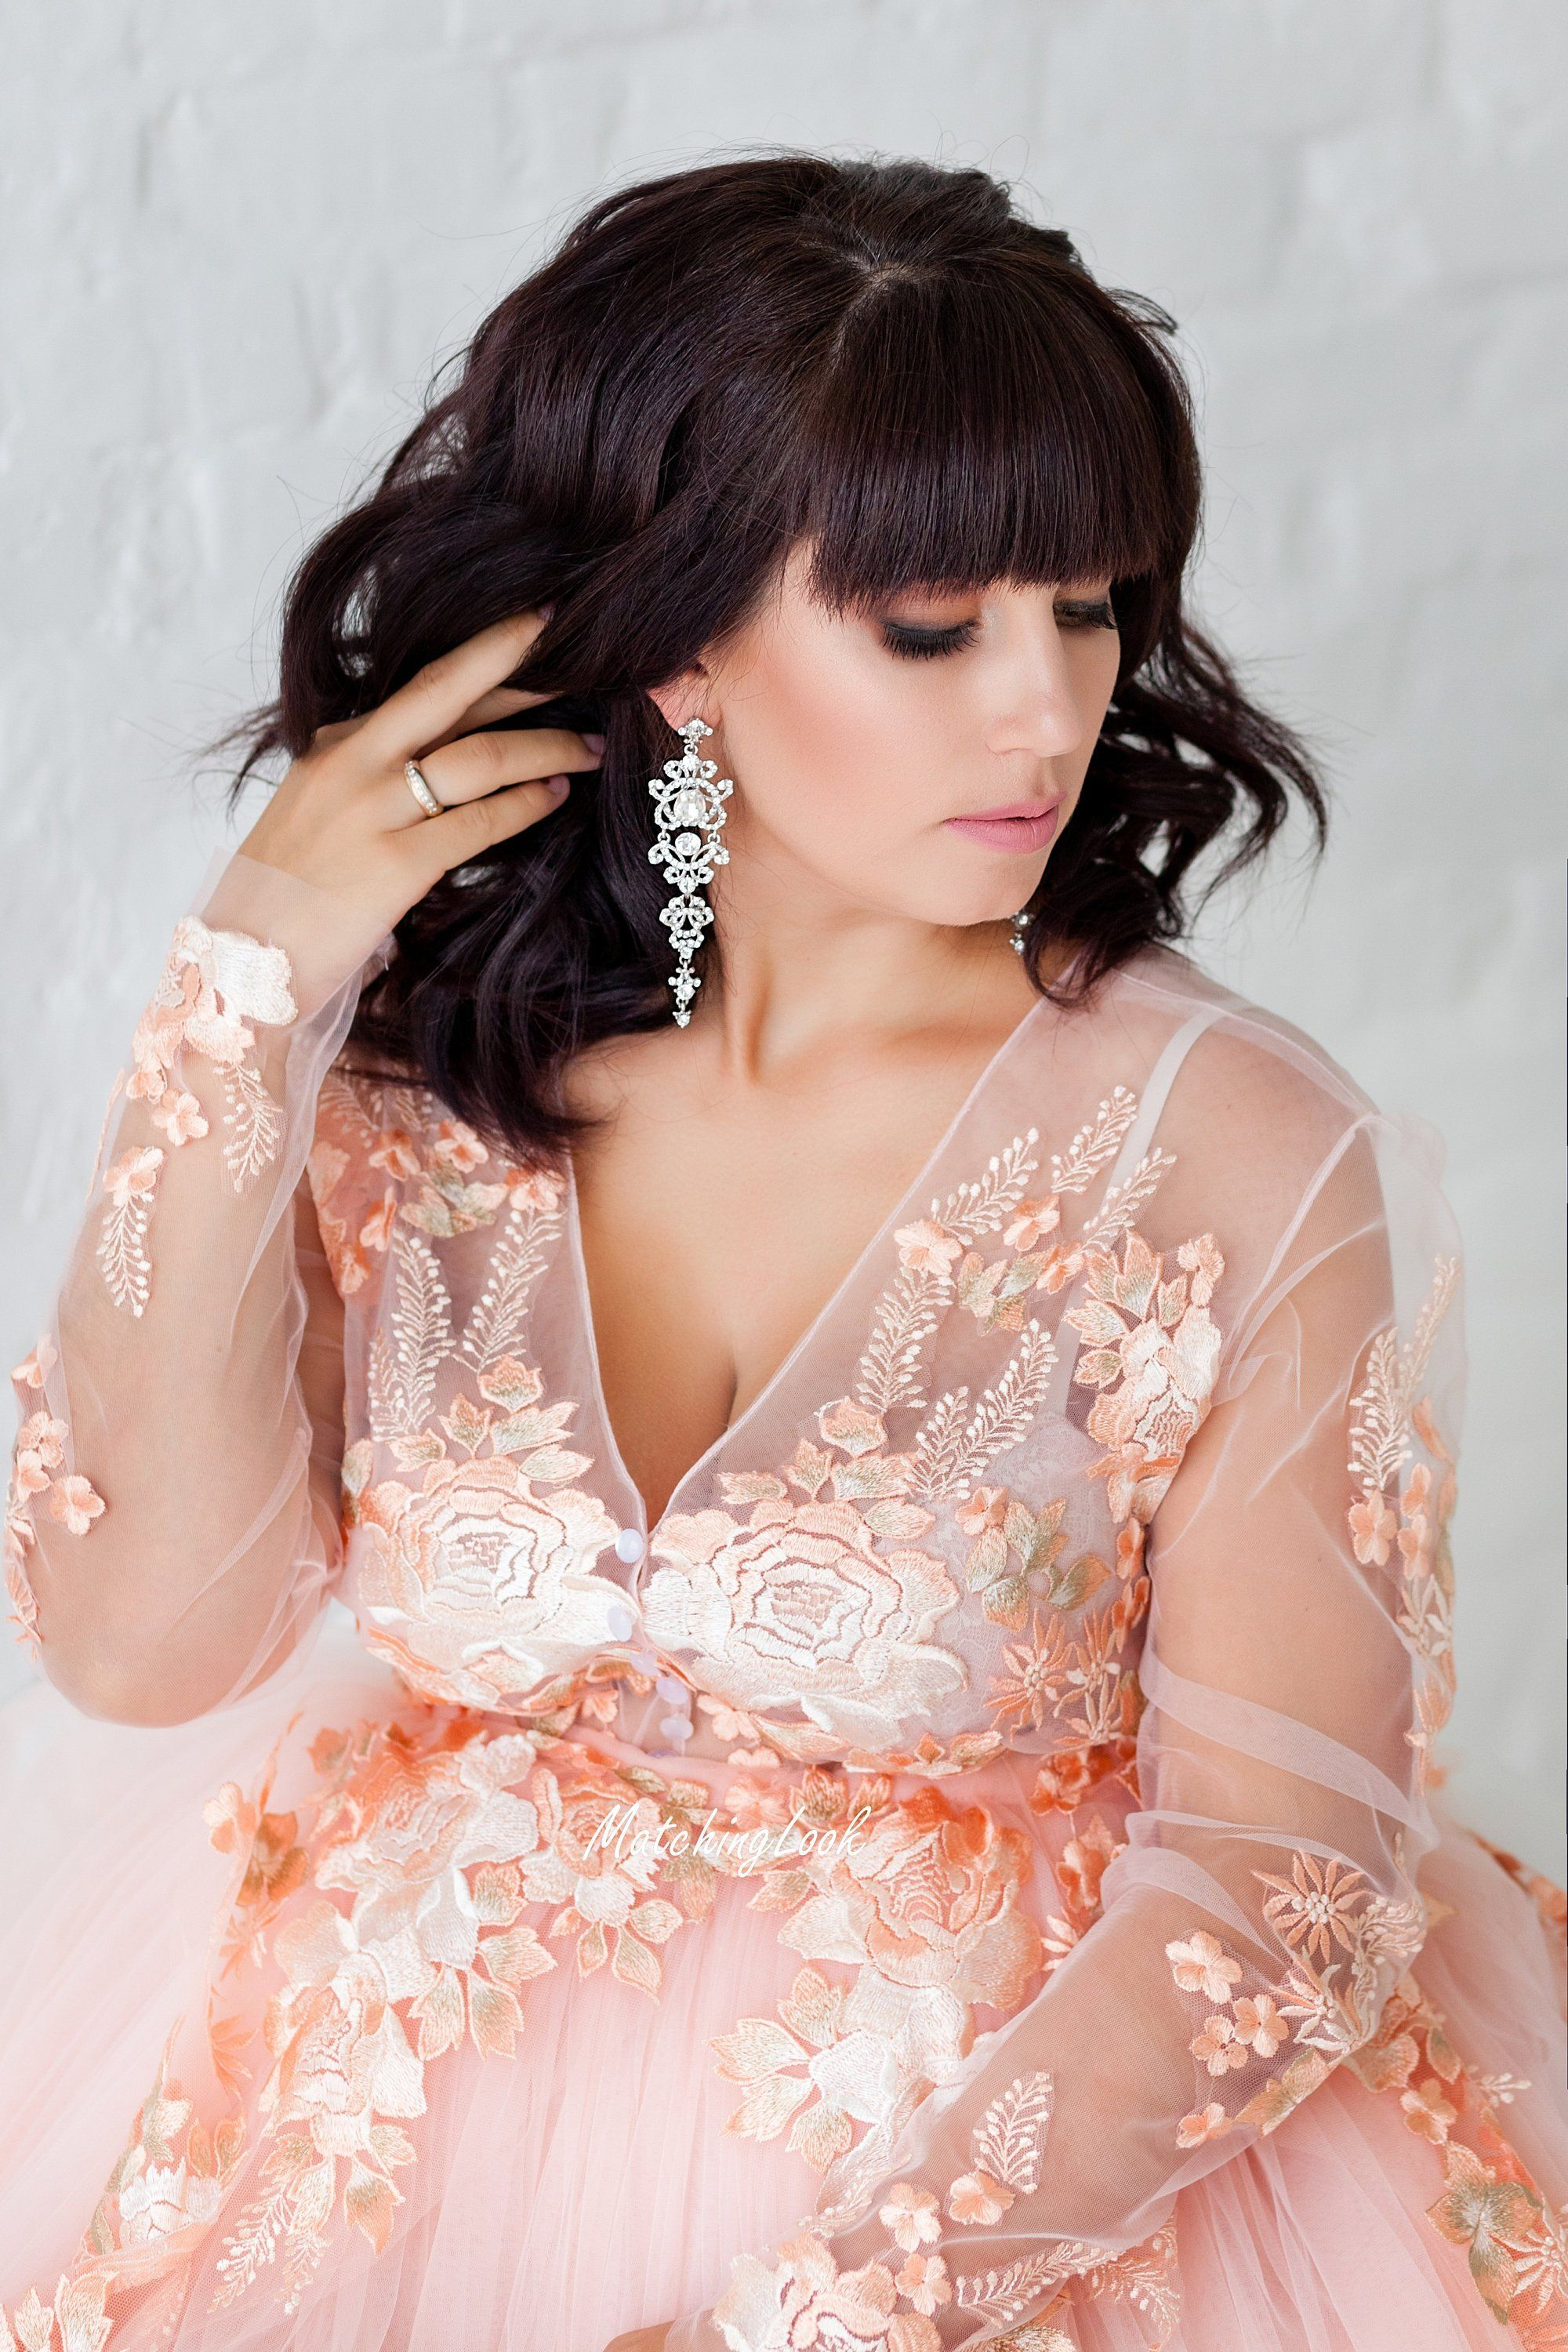 Maternity Dress For Photoshoot Peach Lace Maternity Gown,Resale Wedding Dress Shops Near Me